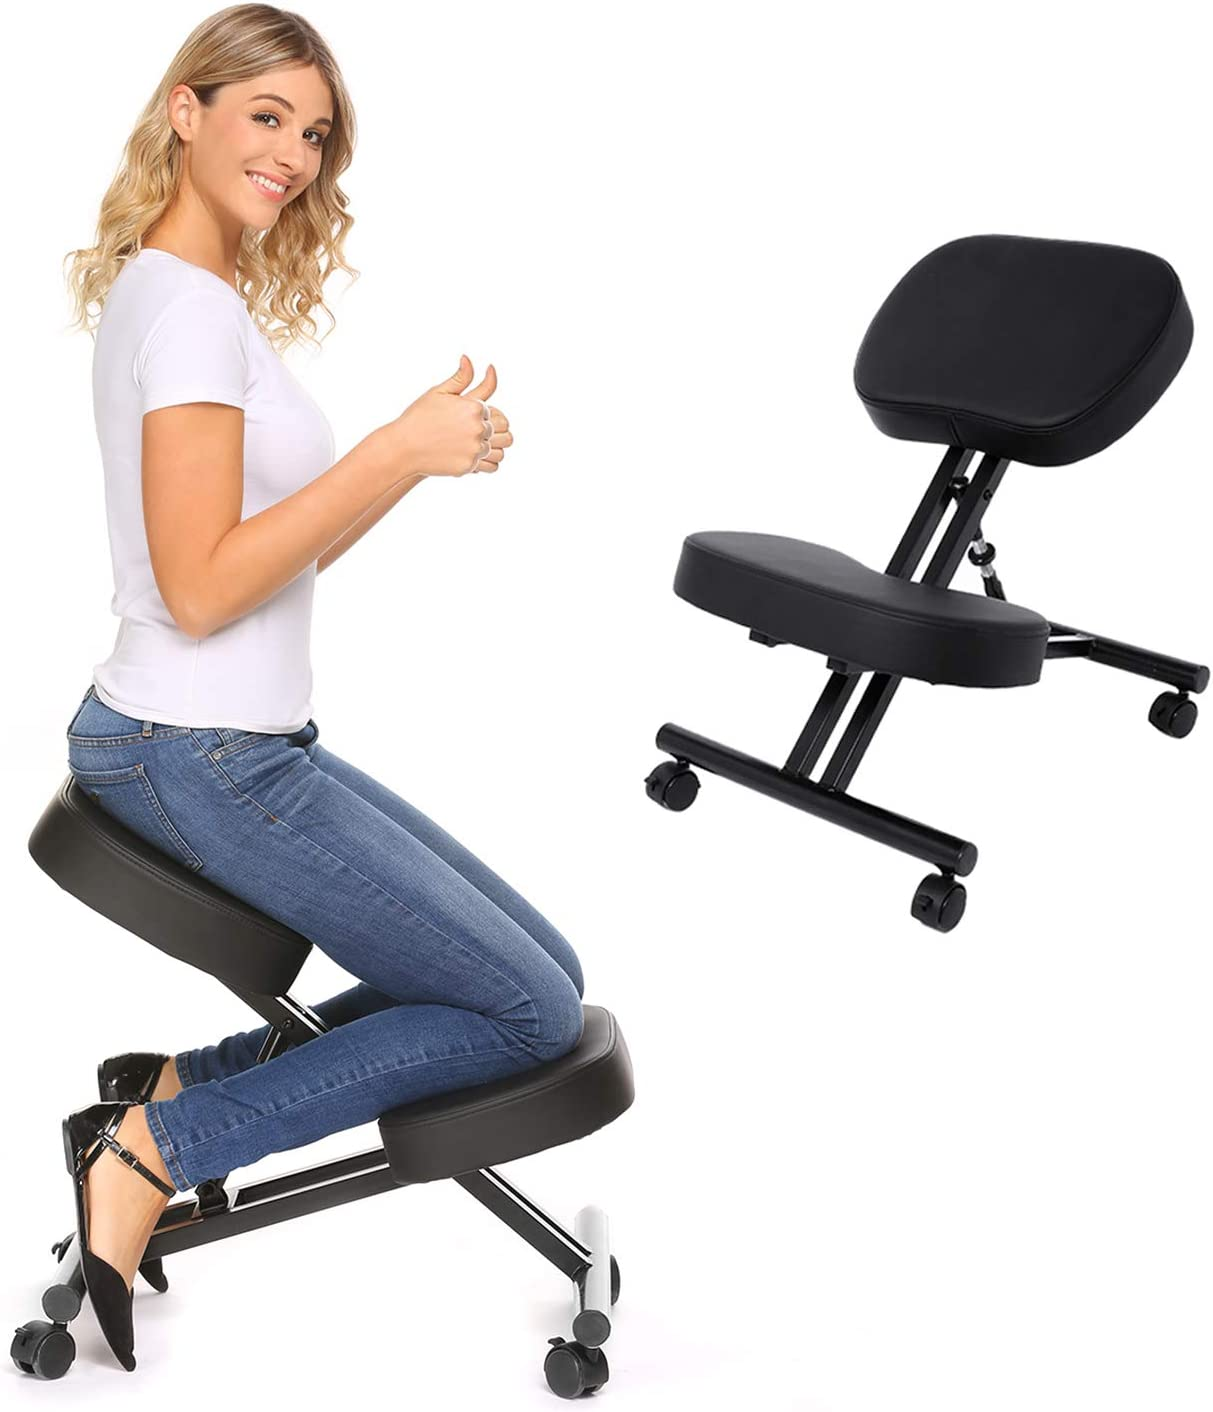 Ergonomic Kneeling Chair Adjustable お気にいる Stool and for Office 信頼 Po Home